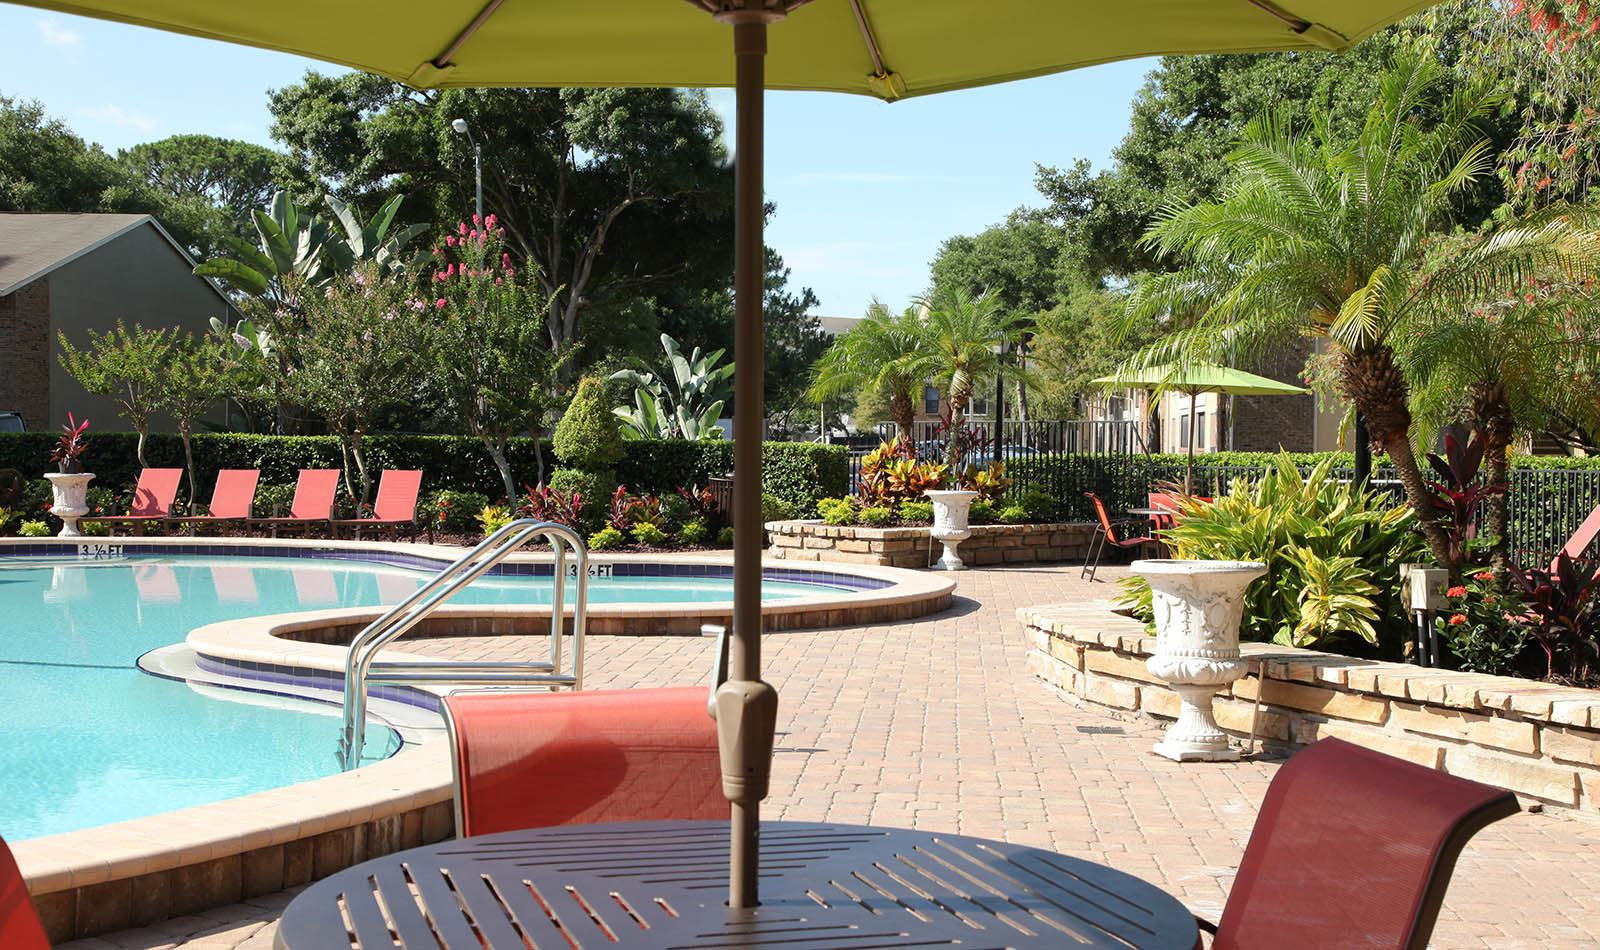 Outdoor Pool at Legend Oaks Apartments in Tampa